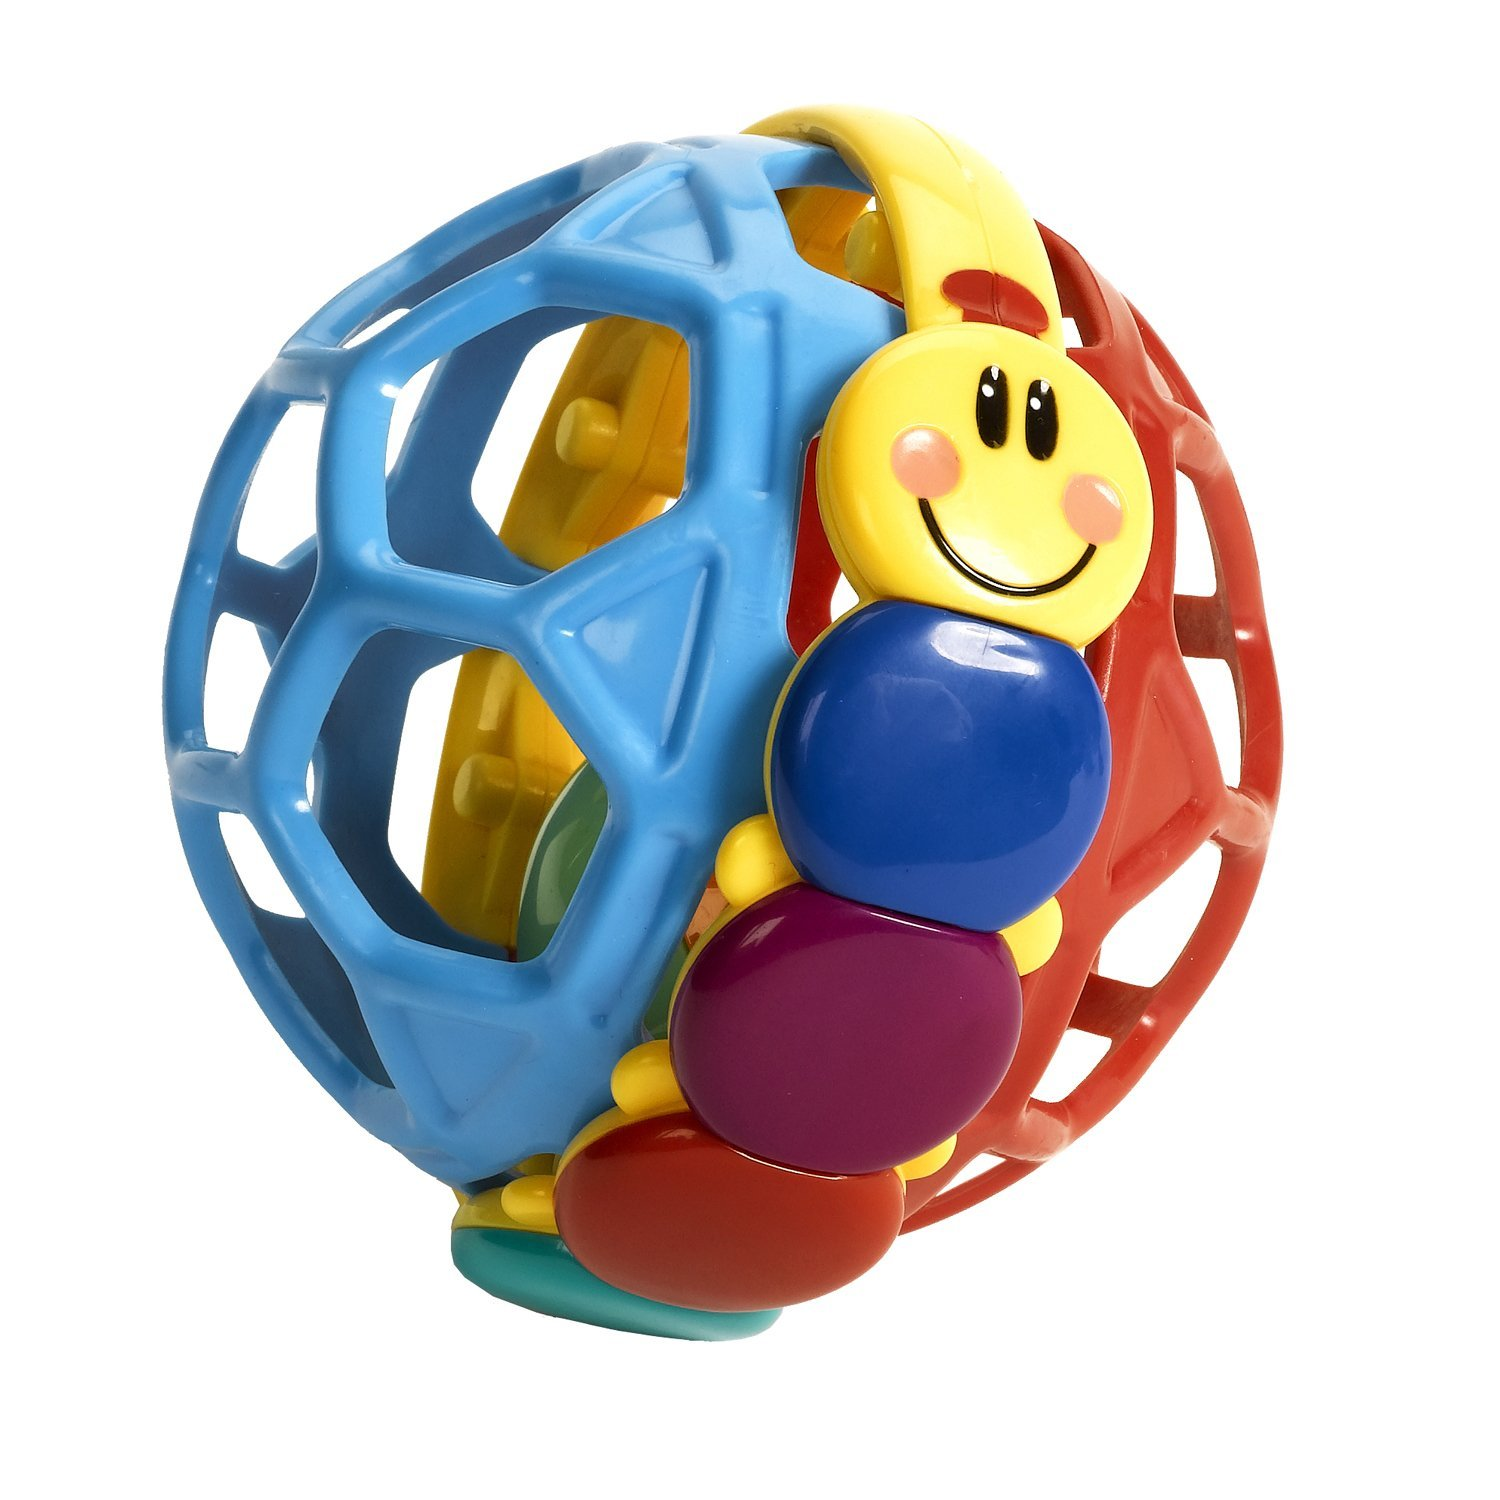 Ball clipart baby toy Art Ball cool Free Free